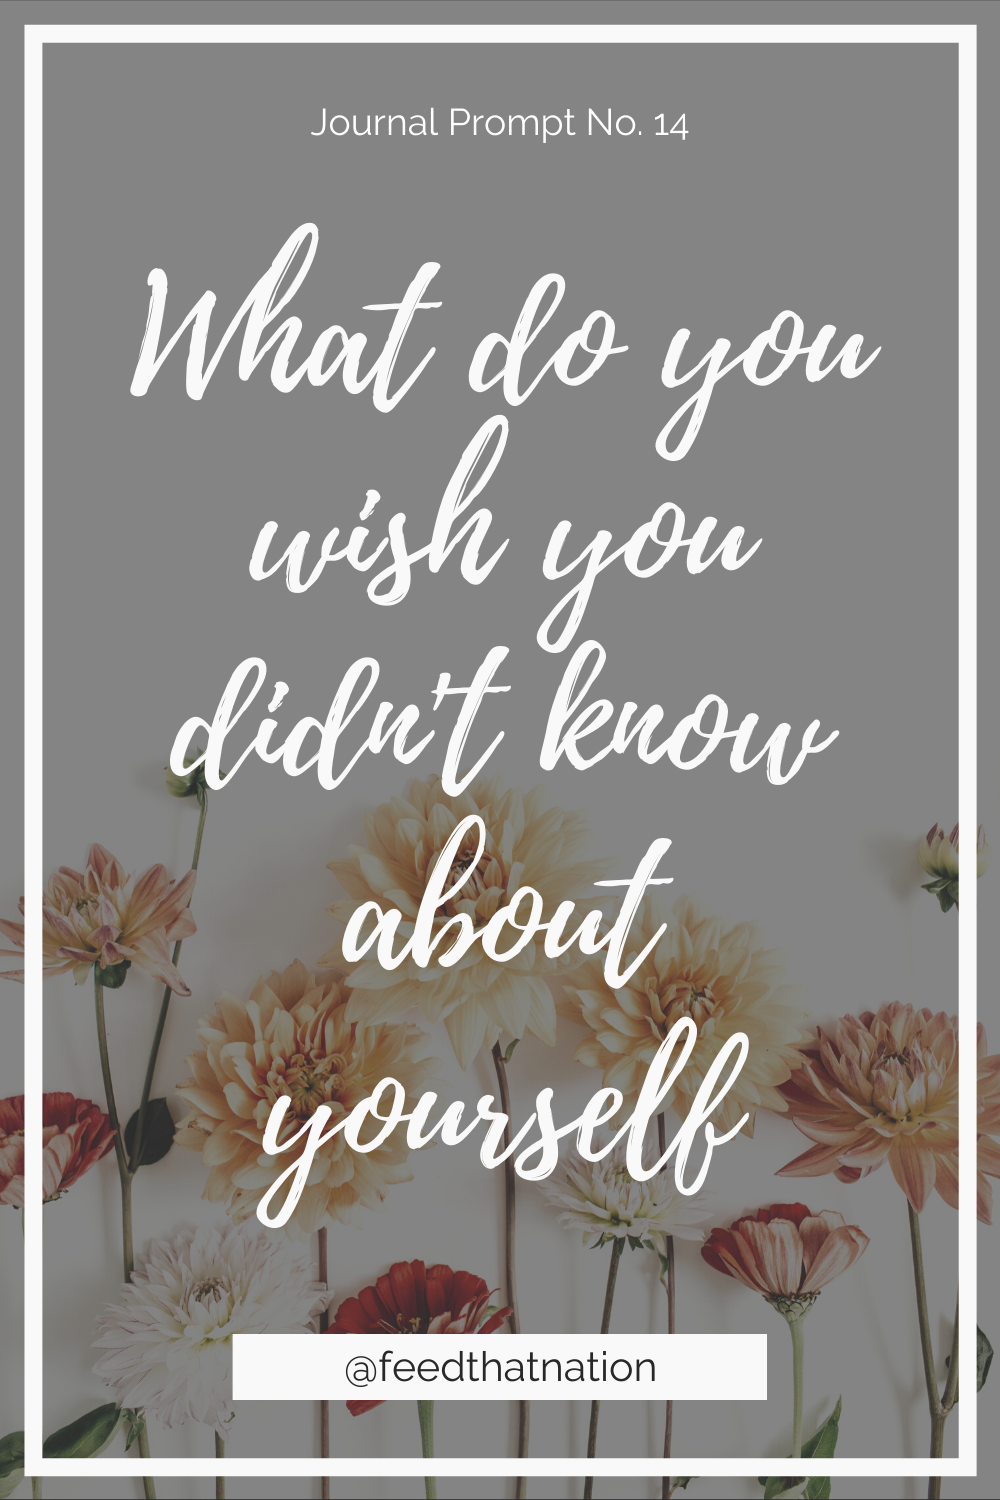 What do you wish you didn't know about yourself